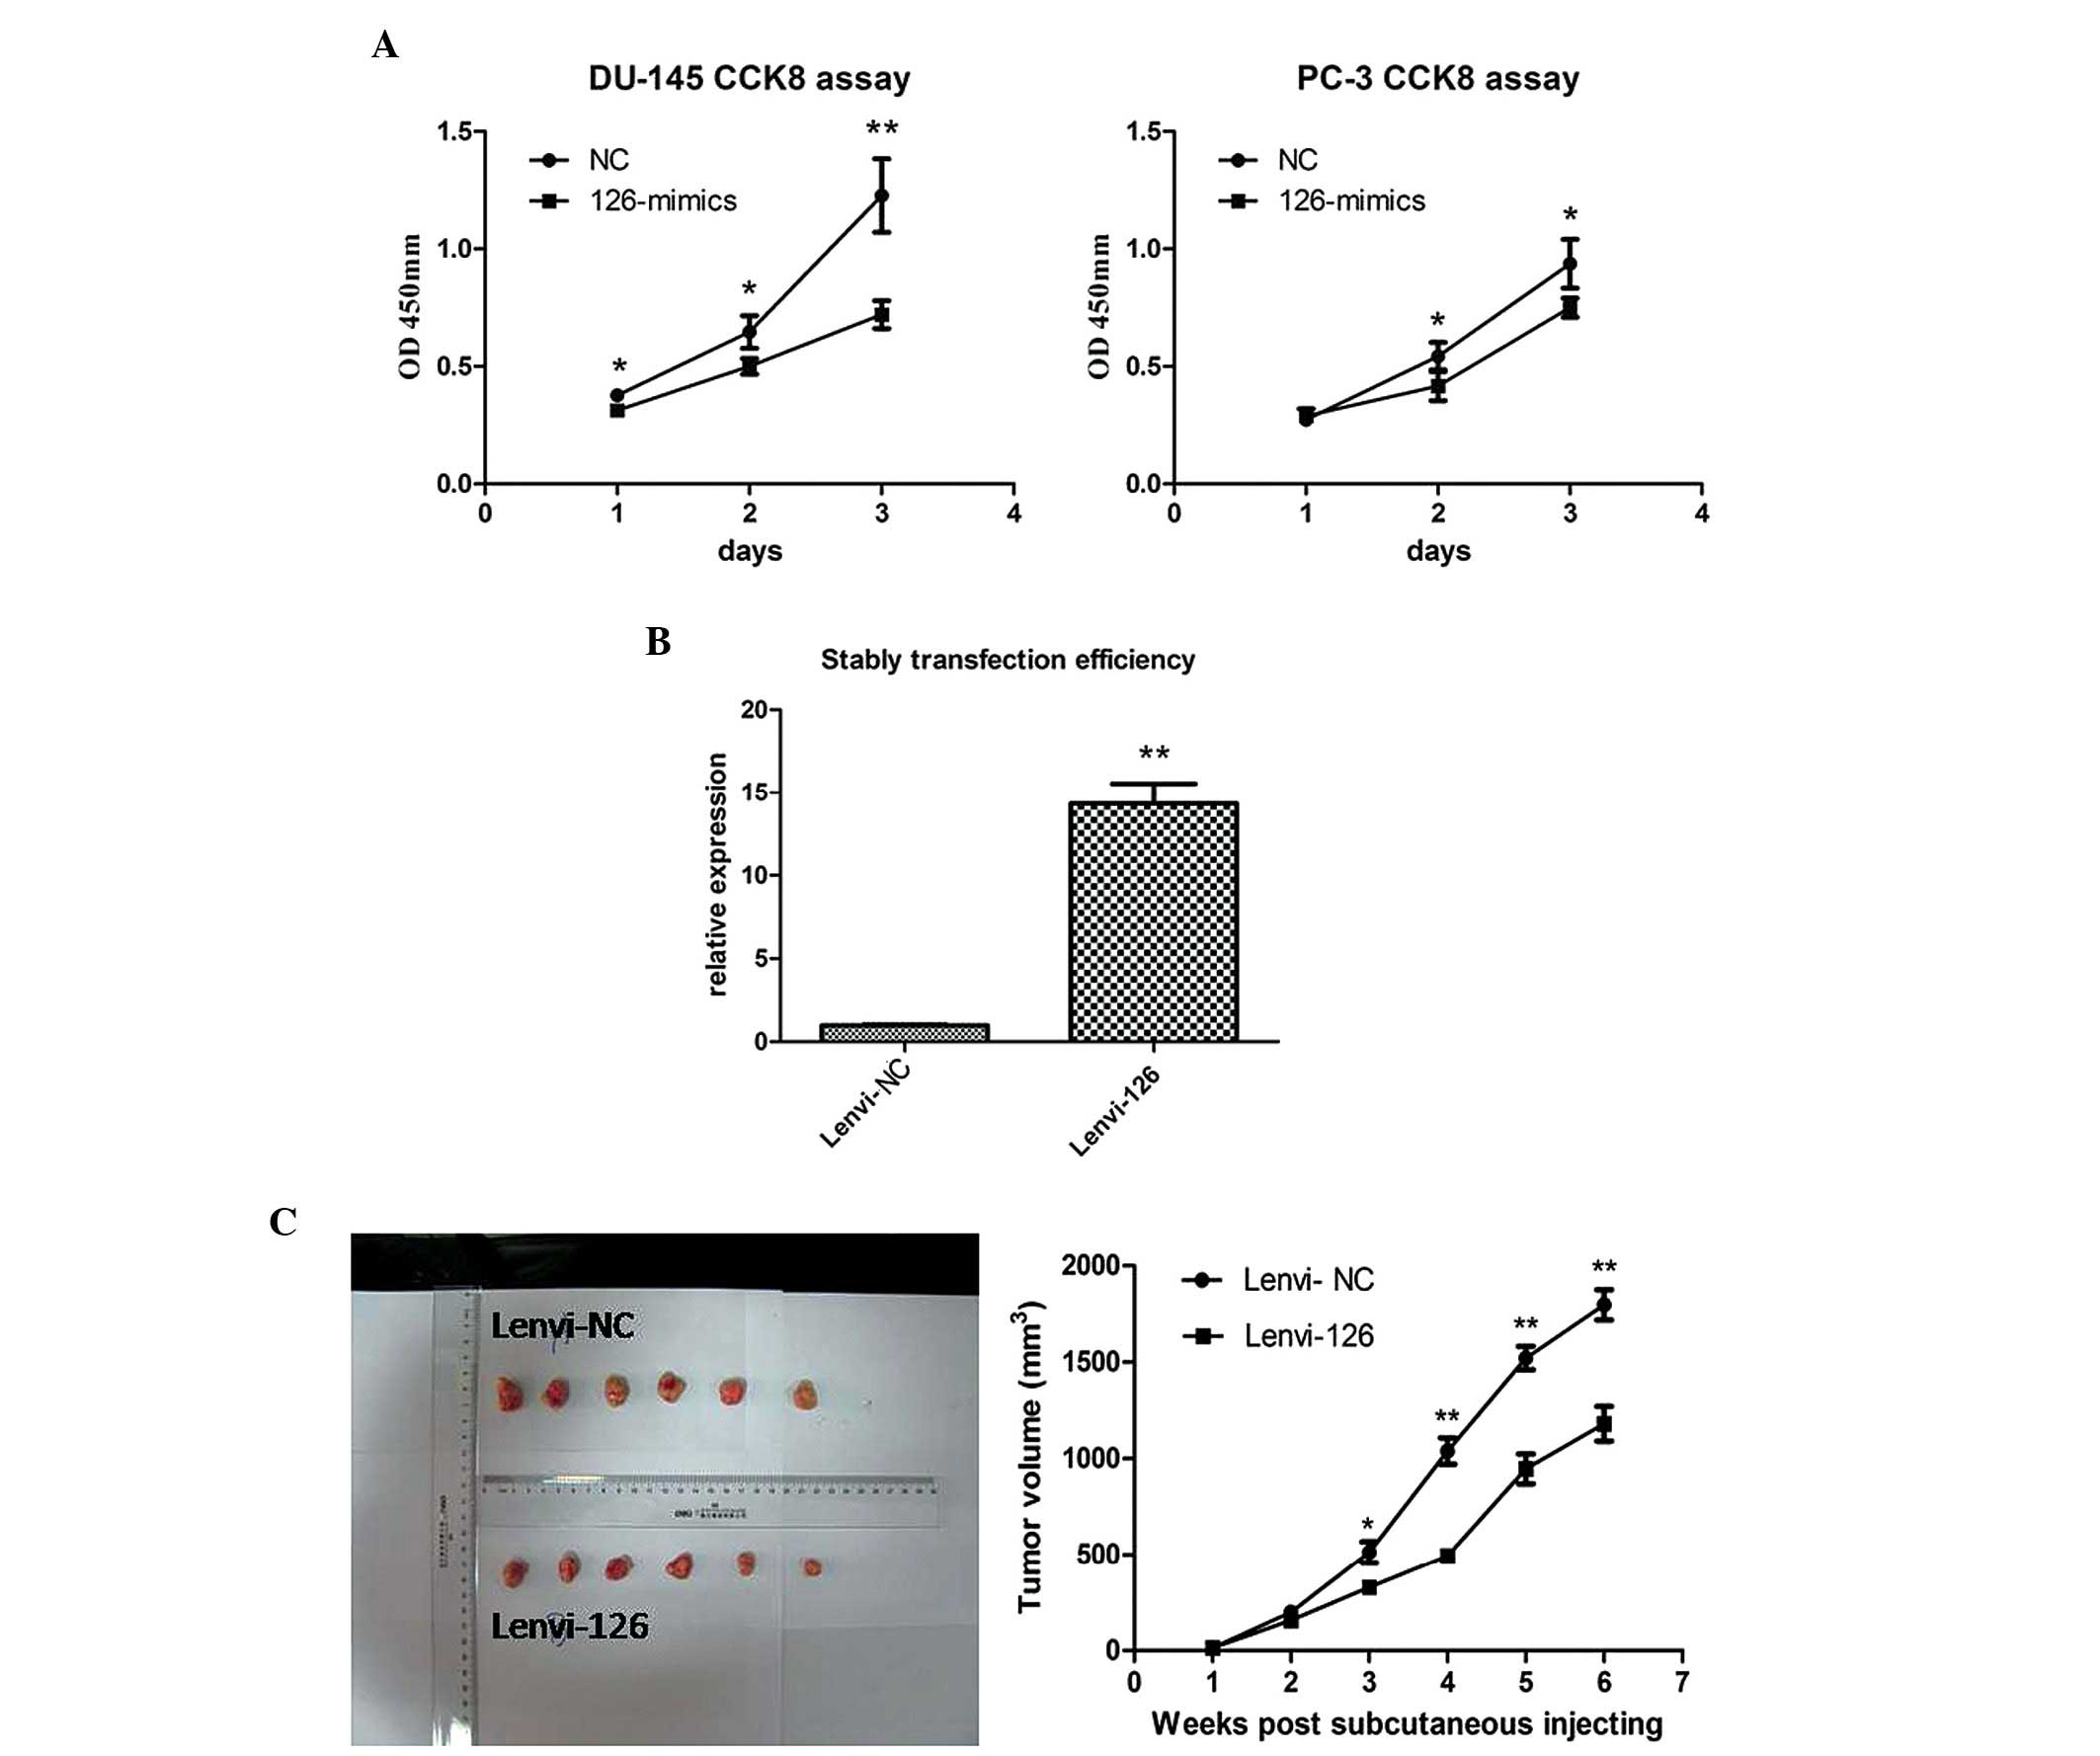 Microrna126 Inhibits Proliferation And Metastasis By Targeting Snap Circuits Pro 500in1 Sc500 S With Computer Inteface B The Expression Level Of Mir 126 In Stably Transfected Pc 3 Cells Was Confirmed Reverse Transcription Quantitative Polymerase Chain Reaction